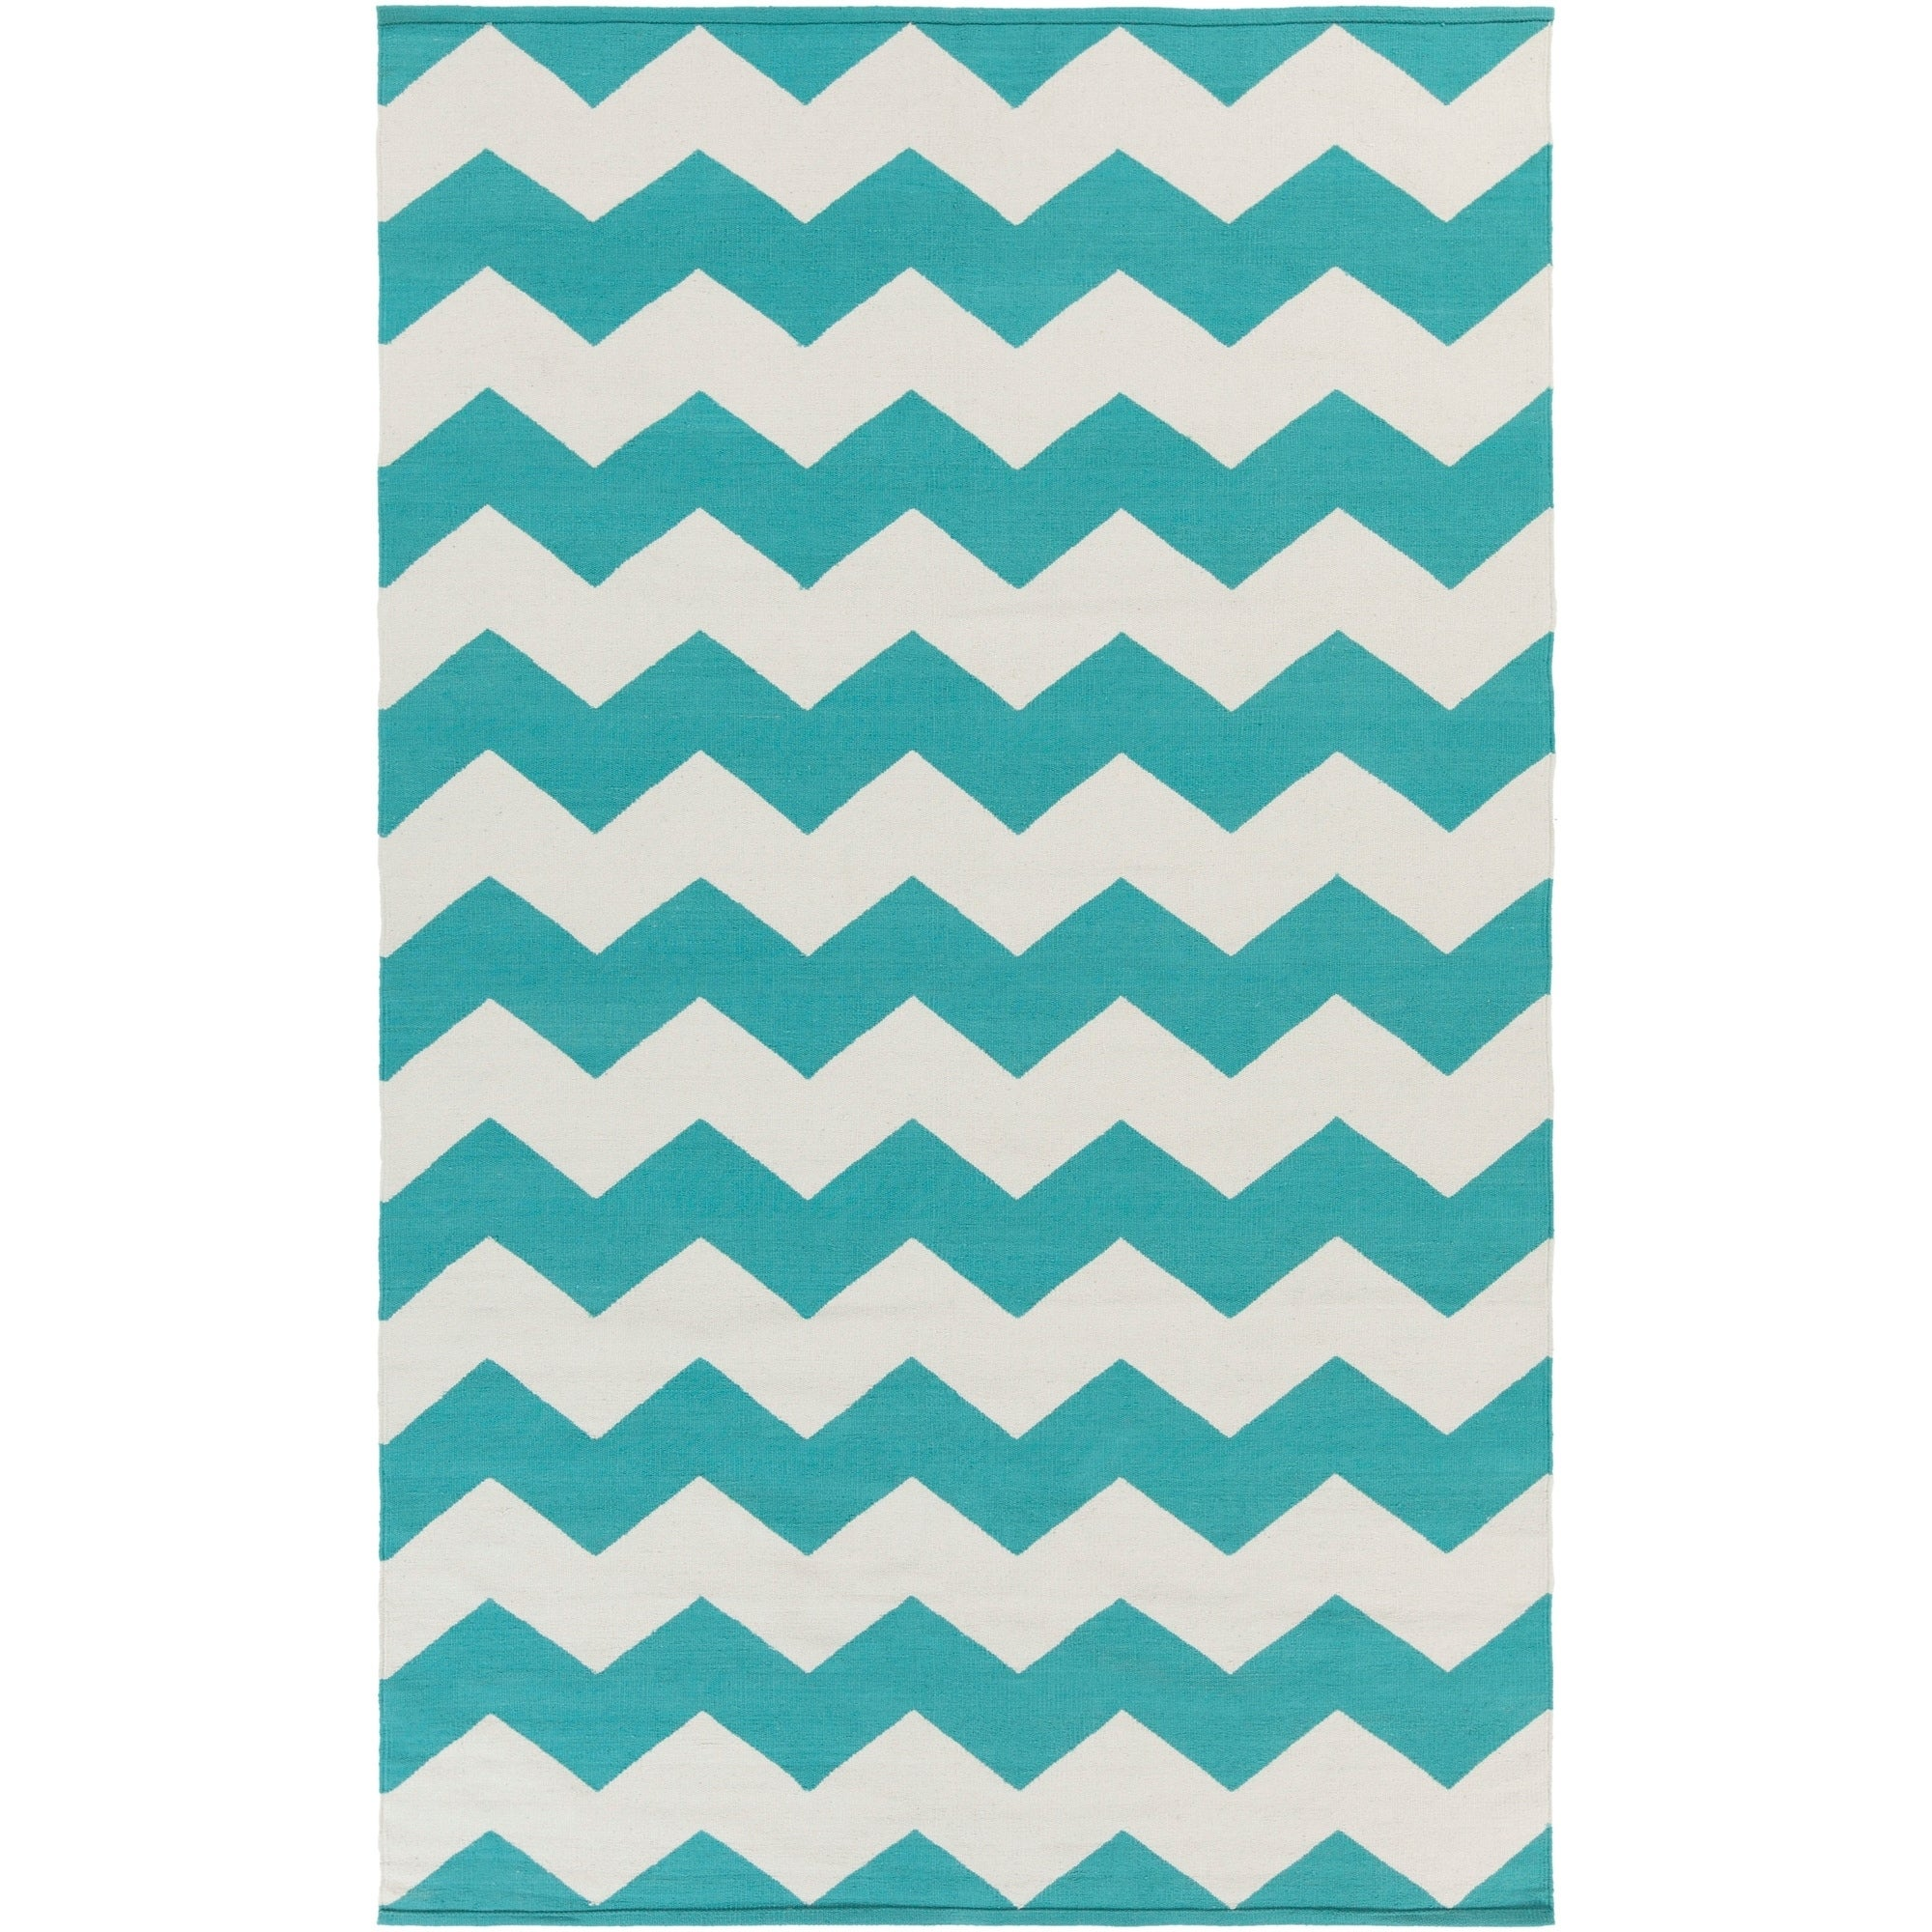 Green Chevron Rugs Find Great Home Decor Deals Ping At Com